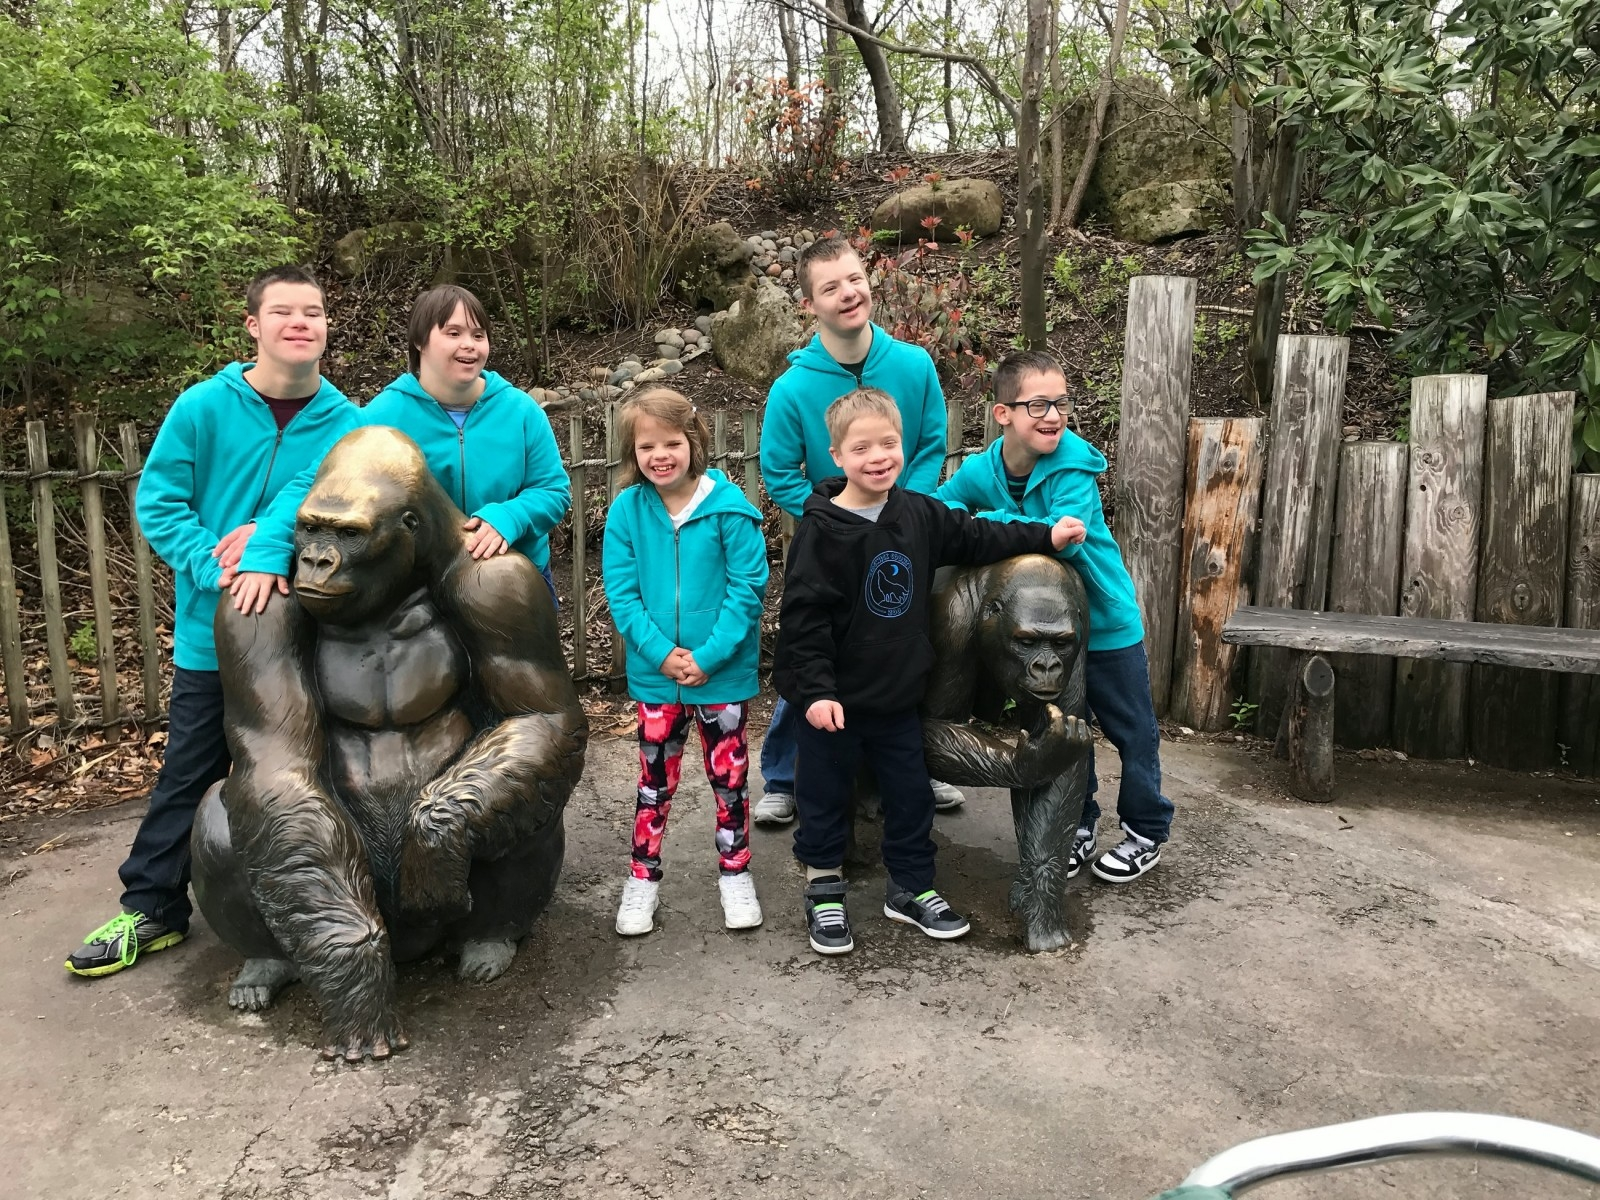 Kind-Hearted Couple Adopt FIVE Children With Down Syndrome After Being Inspired By Their Daughter